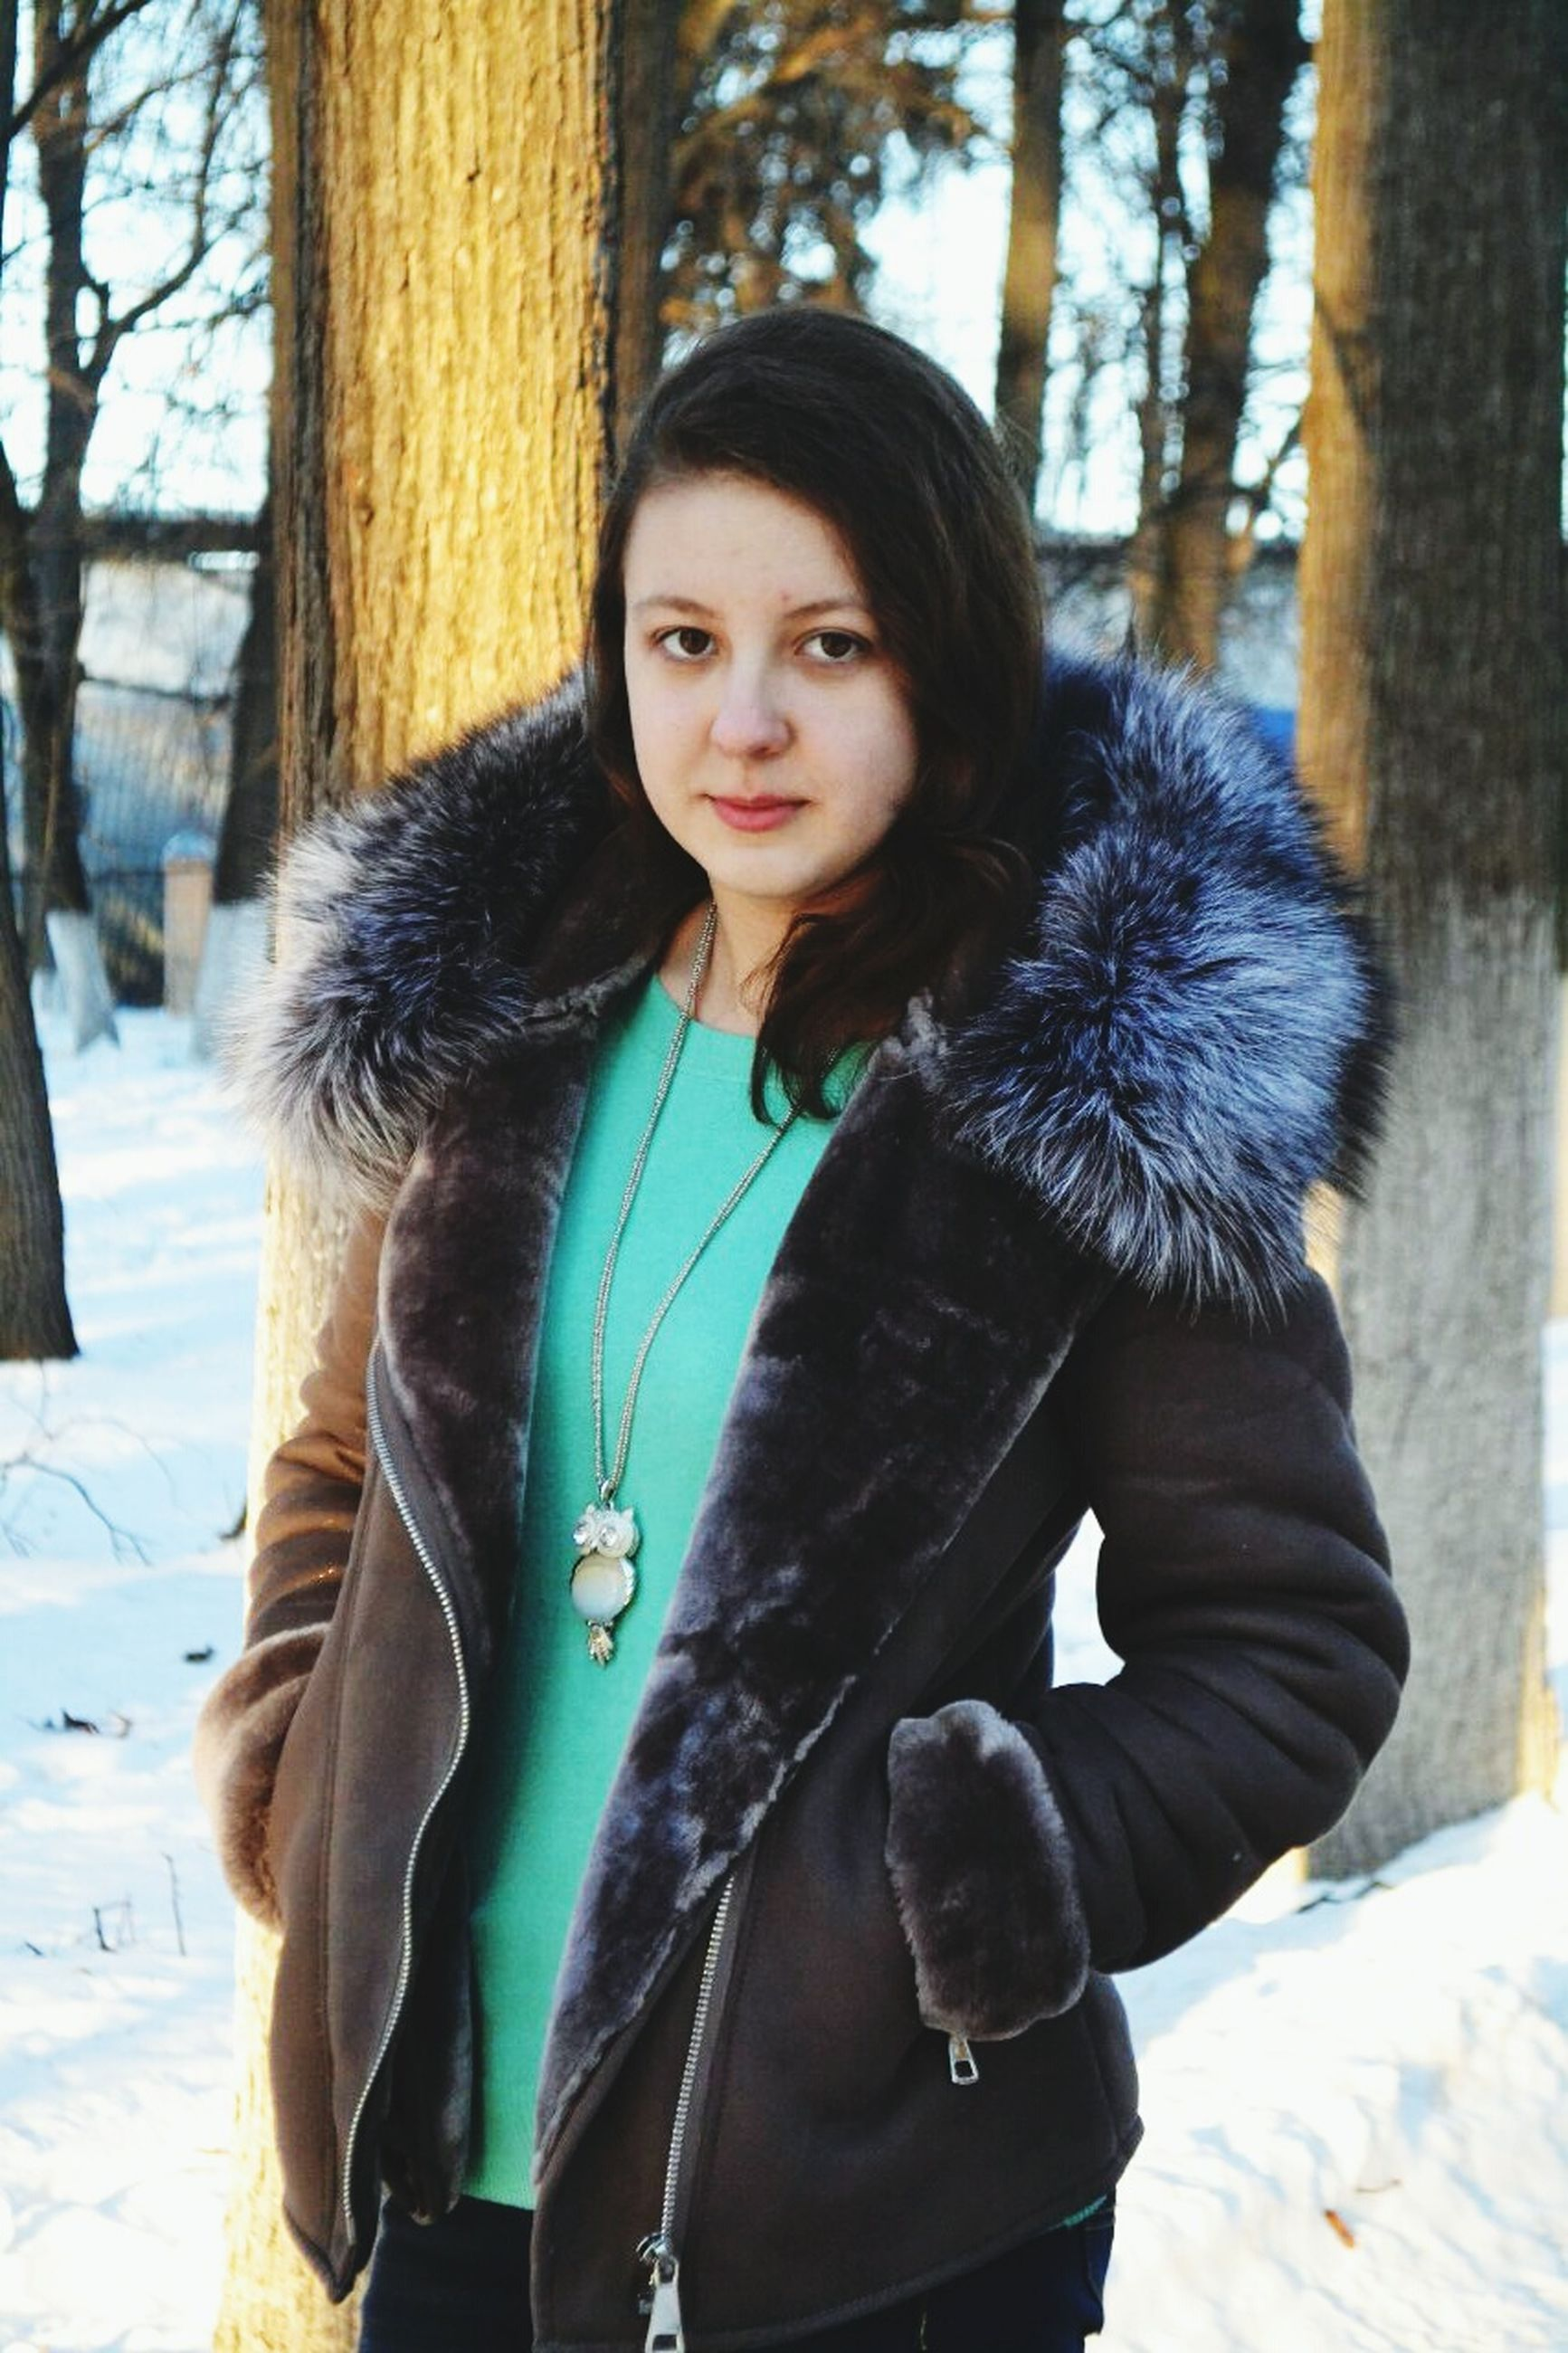 young adult, long hair, young women, lifestyles, person, casual clothing, leisure activity, front view, portrait, looking at camera, three quarter length, standing, smiling, tree, waist up, focus on foreground, jacket